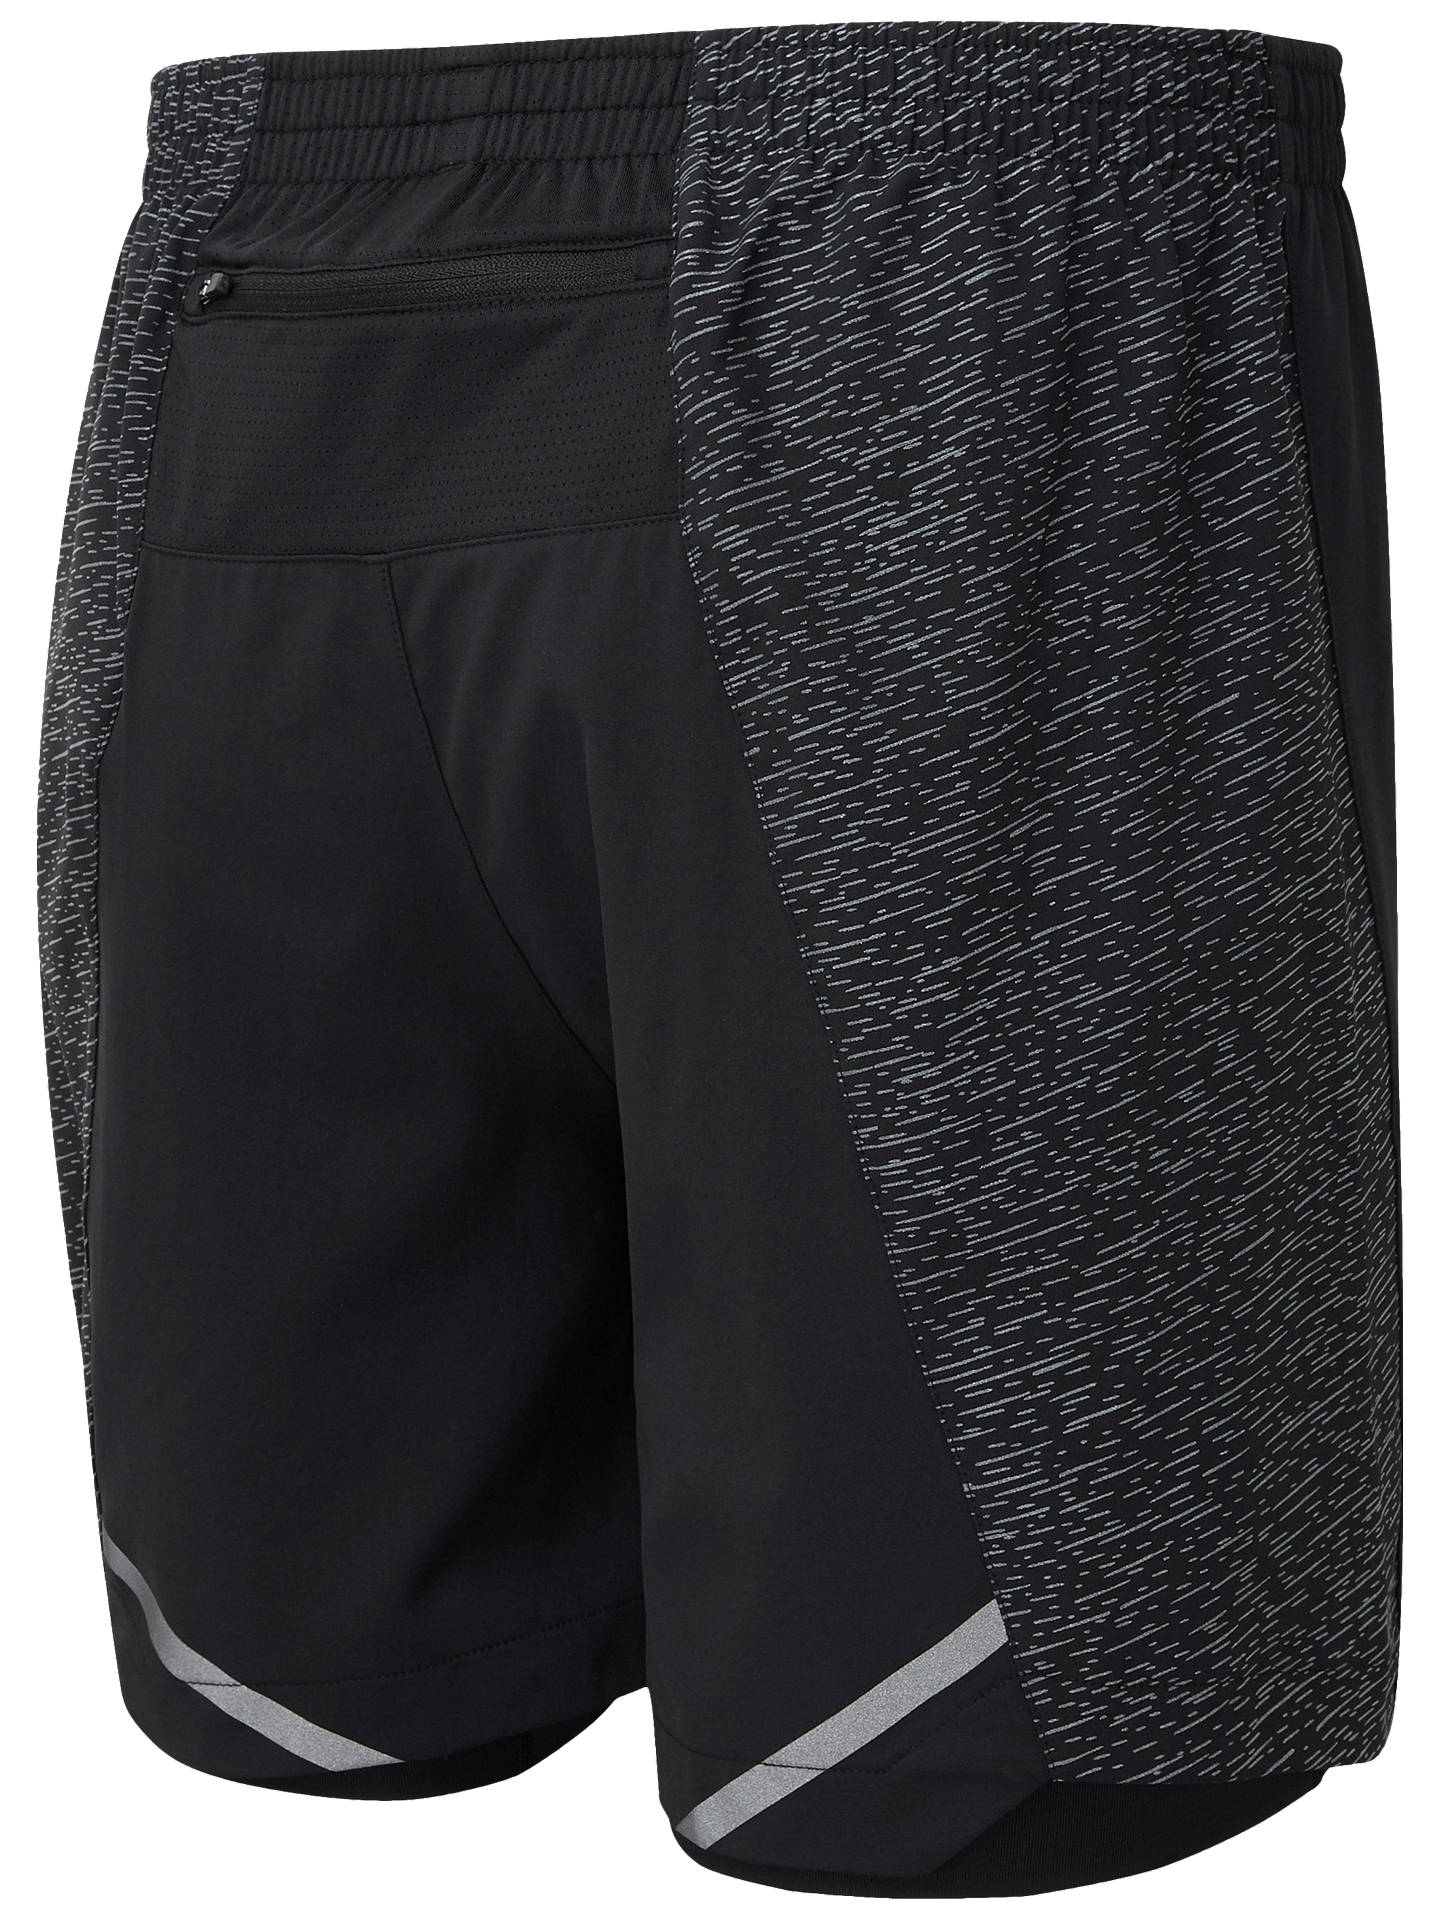 BuyRonhill After Light Twin Running Shorts, All Black, XL Online at johnlewis.com